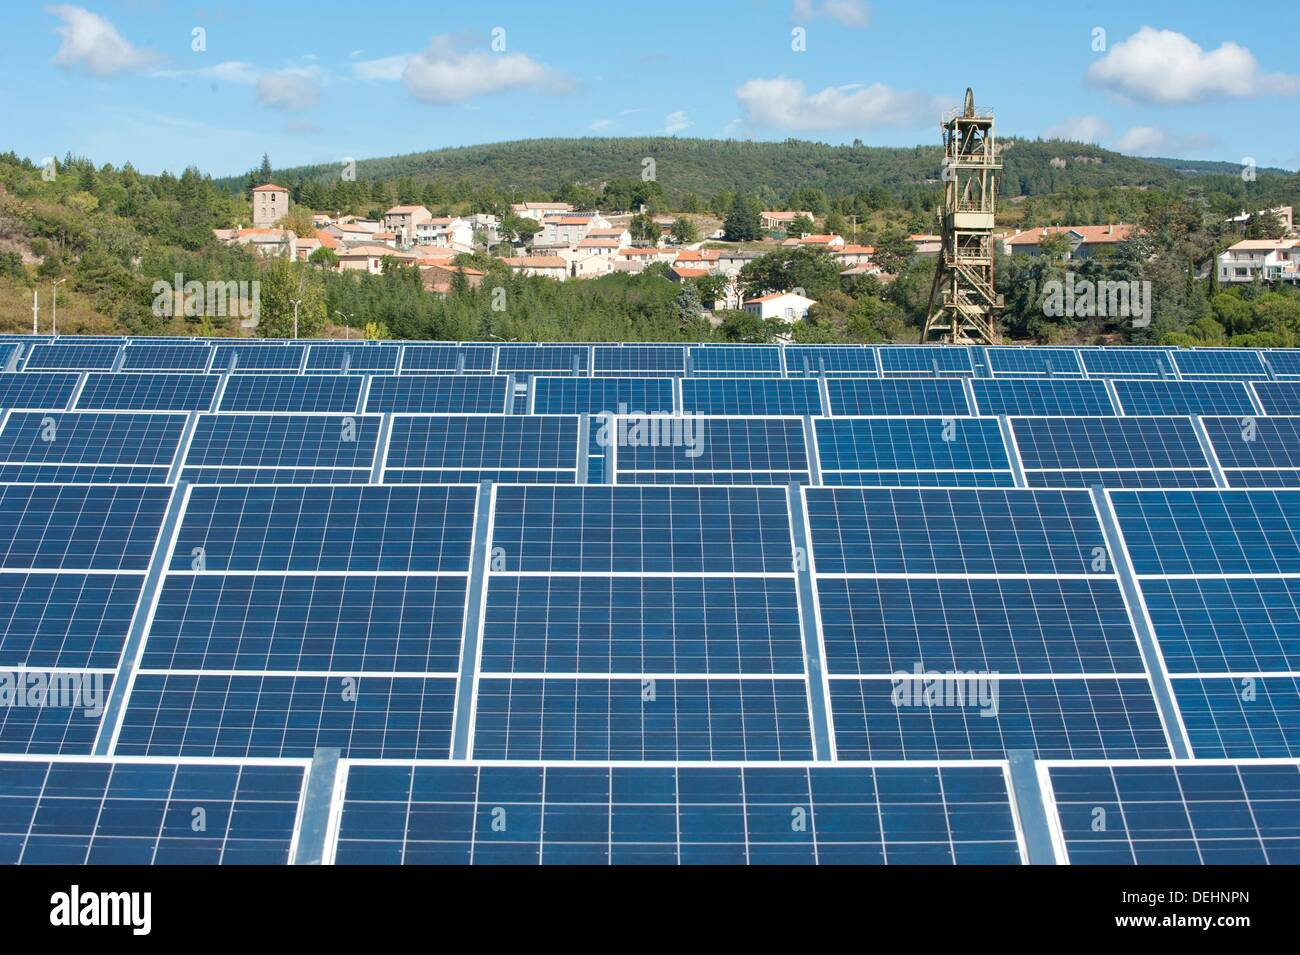 Construction of solar panels for production of renewable electrical on battery solar panels, thermal solar panels, circuit solar panels, power solar panels, electric current solar panels, alternating current solar panels, fossil fuel solar panels,